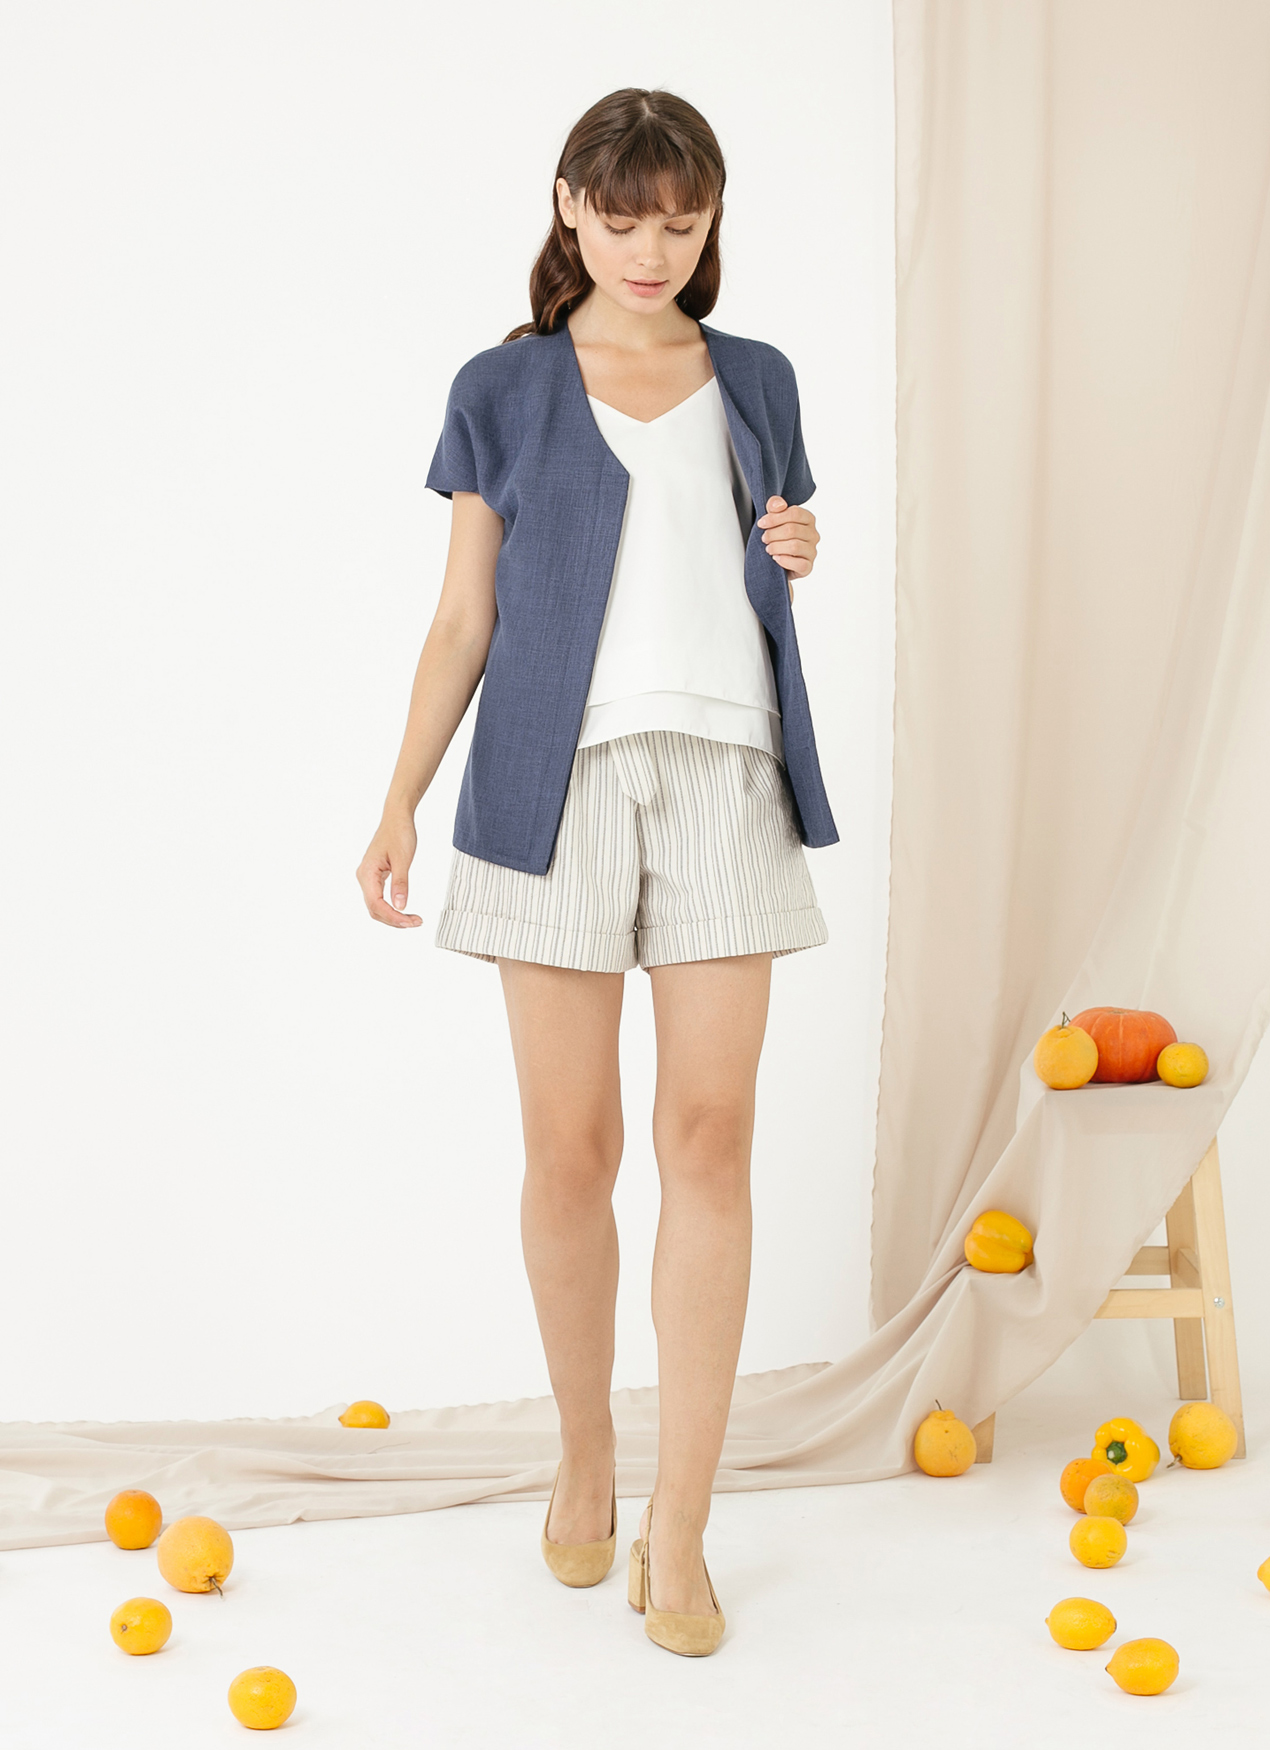 CLOTH INC Cava Linen Top - Navy